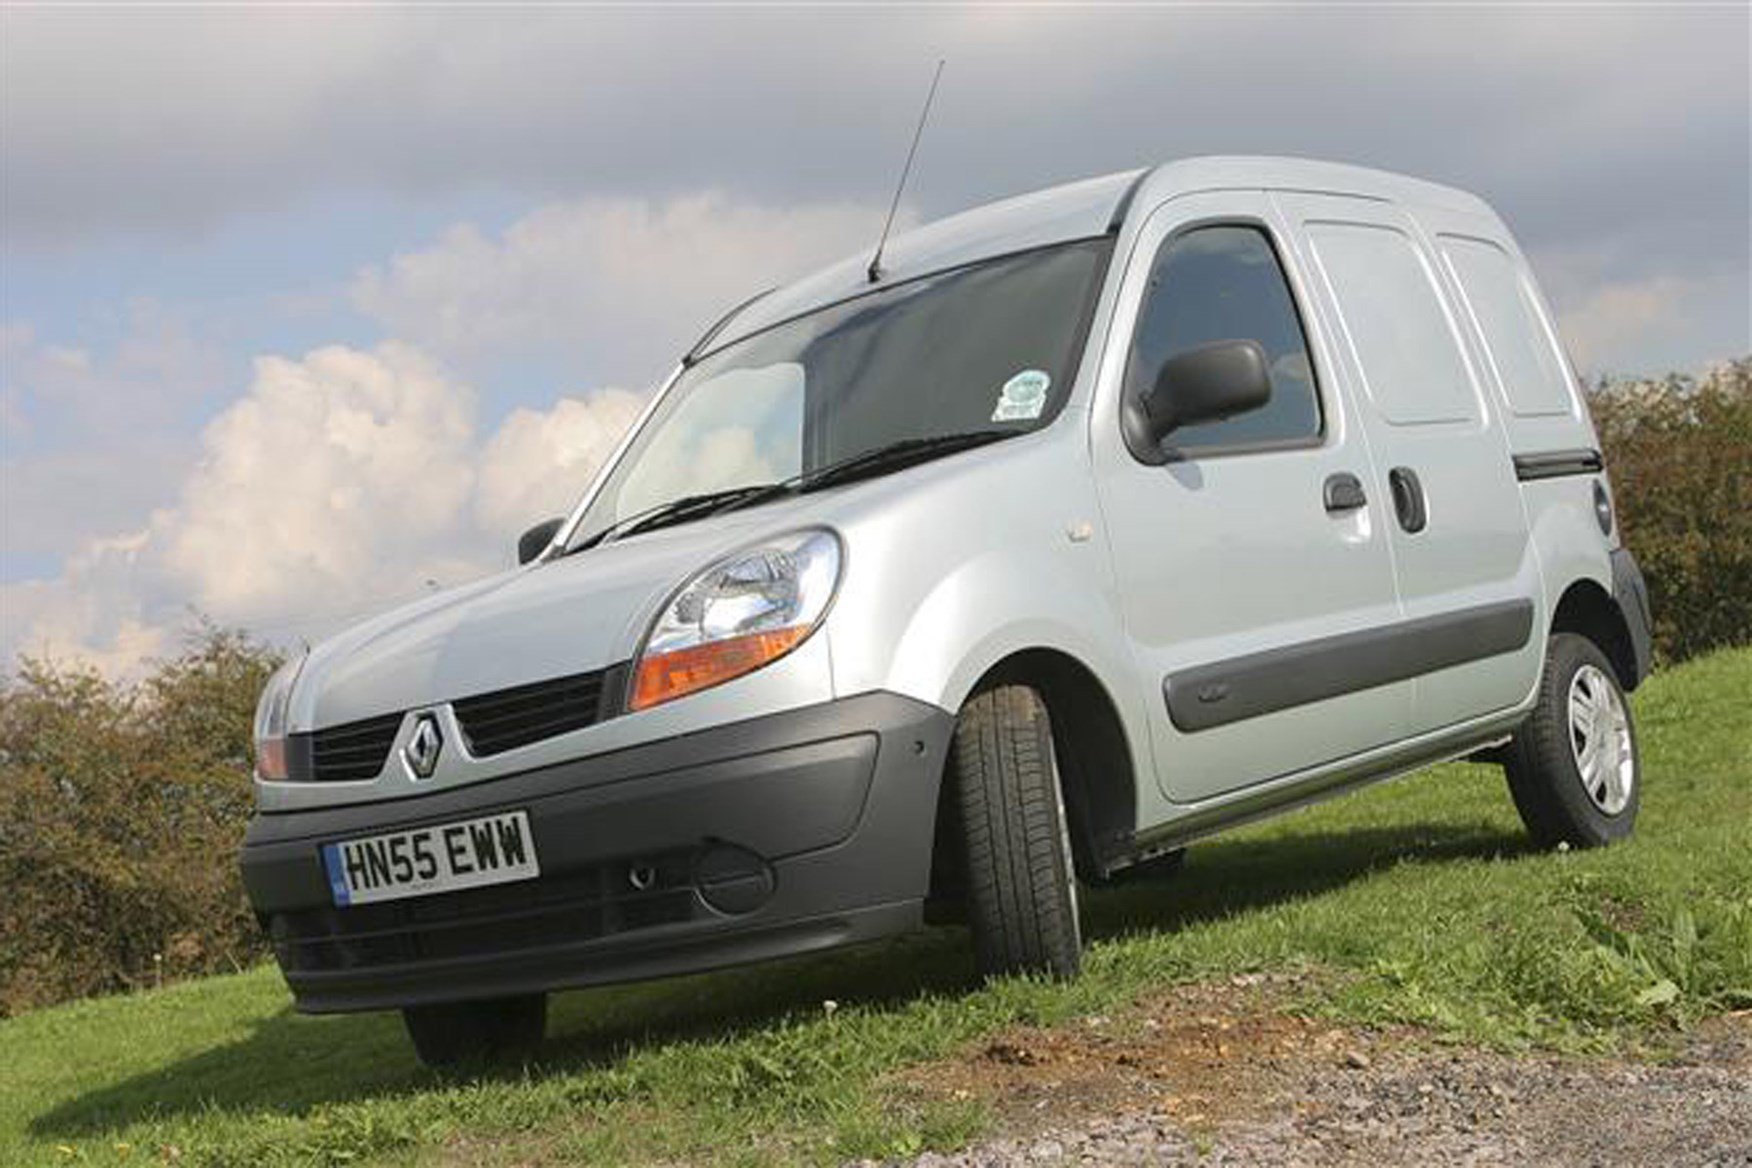 8cc4f260440197 Renault Kangoo review on Parkers Vans - exterior